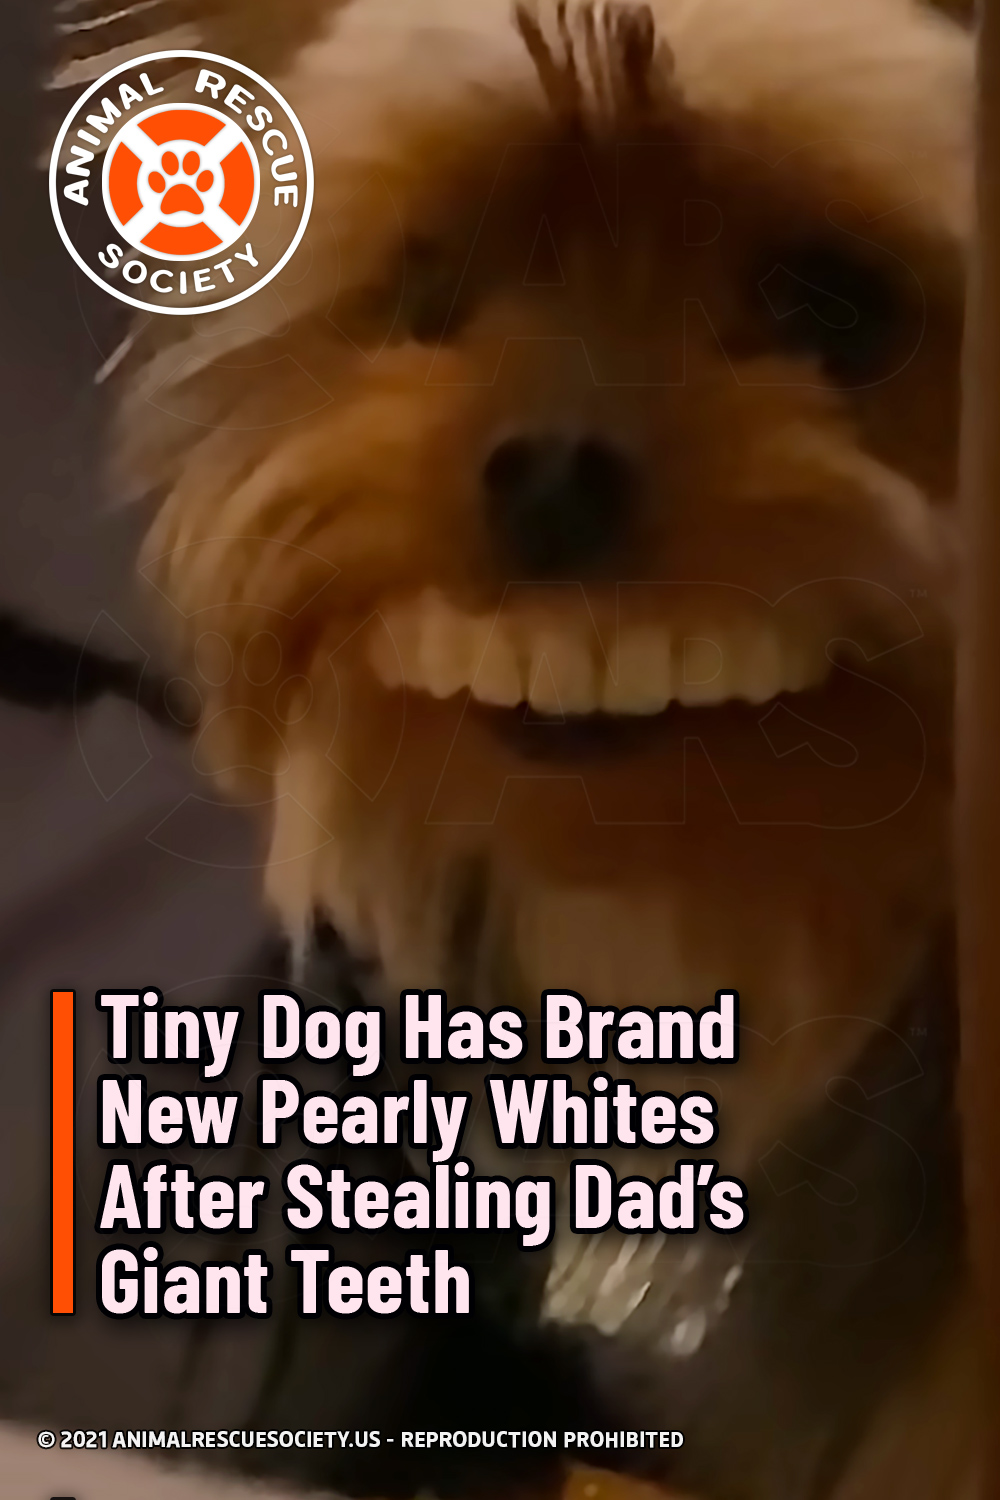 Tiny Dog Has Brand New Pearly Whites After Stealing Dad's Giant Teeth